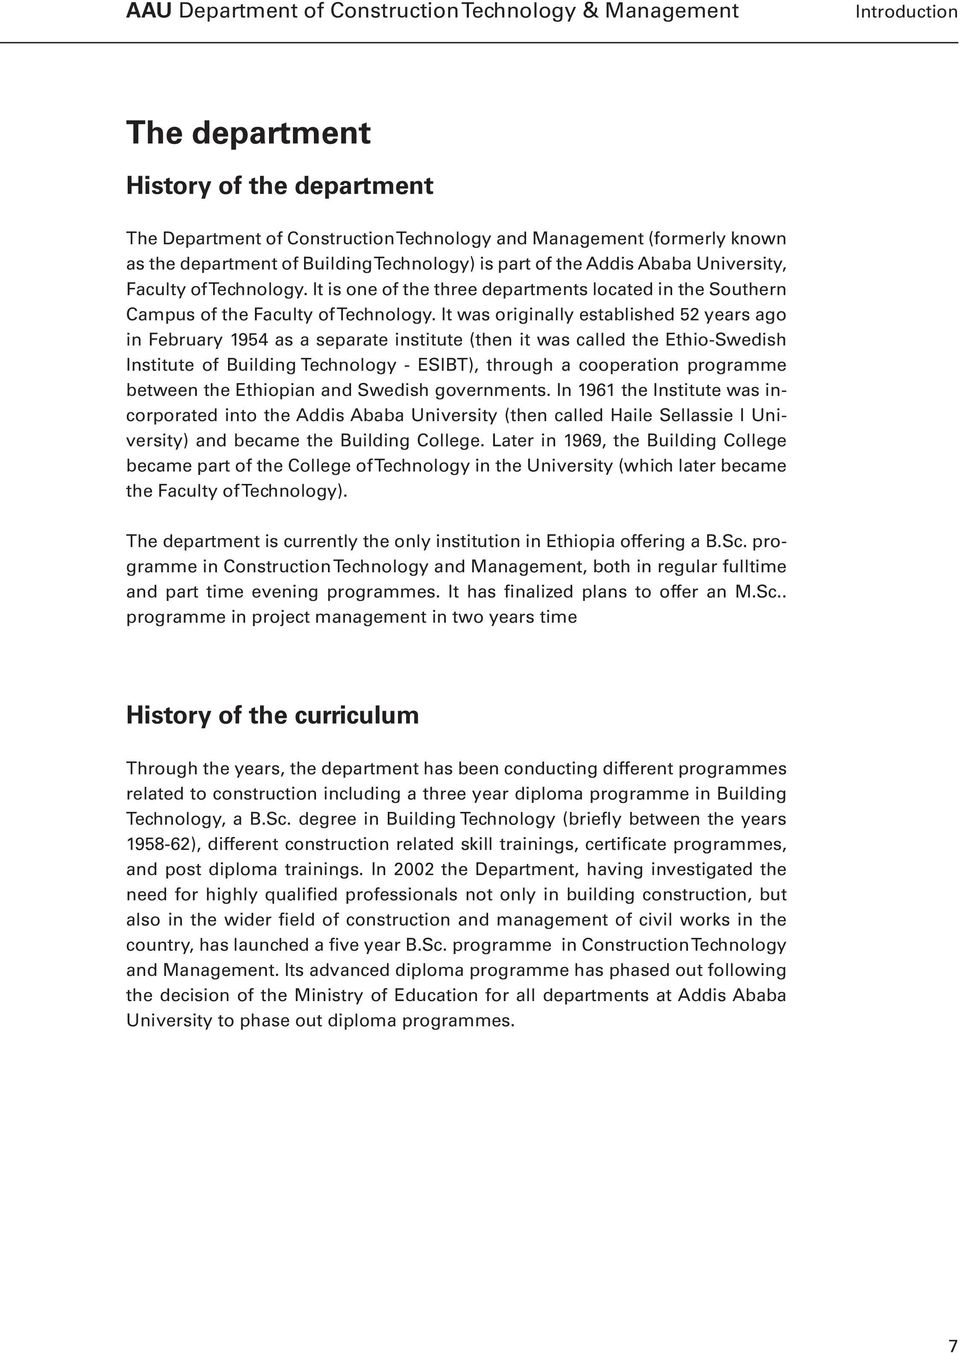 AAU Faculty of Technology Curriculum reform  Book III Department of